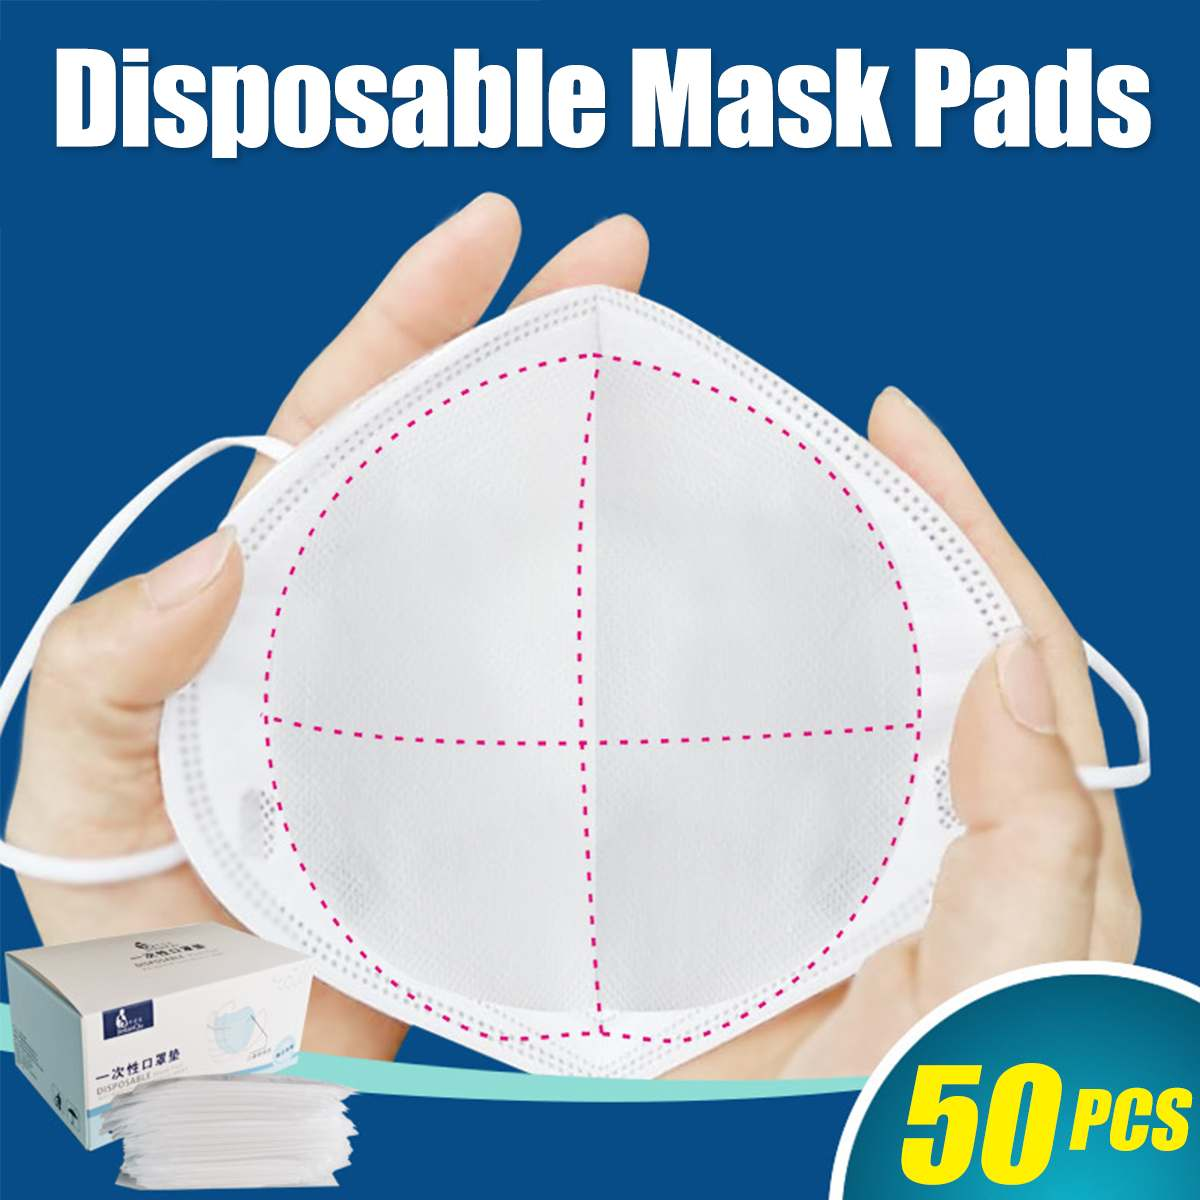 50PCS Mask Respirator Filter Pad 3 Layers Disposable Anti Smog Anti Flu Prevention For Kf94 N95 KN95 Ffp3 2 1 All Face Mask